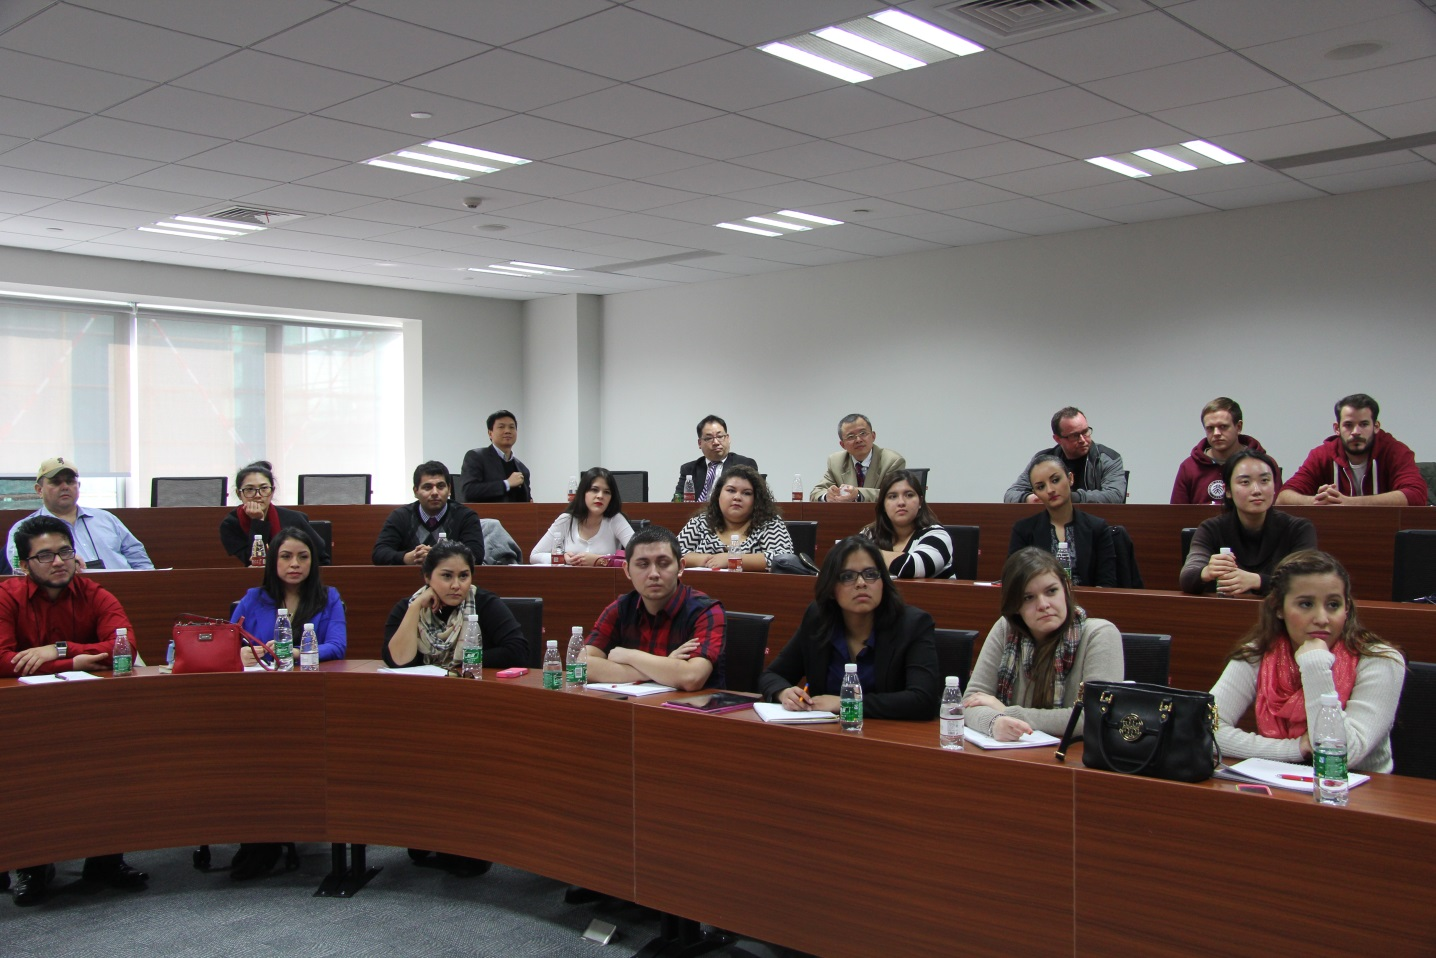 Questions about MBA program, etc???